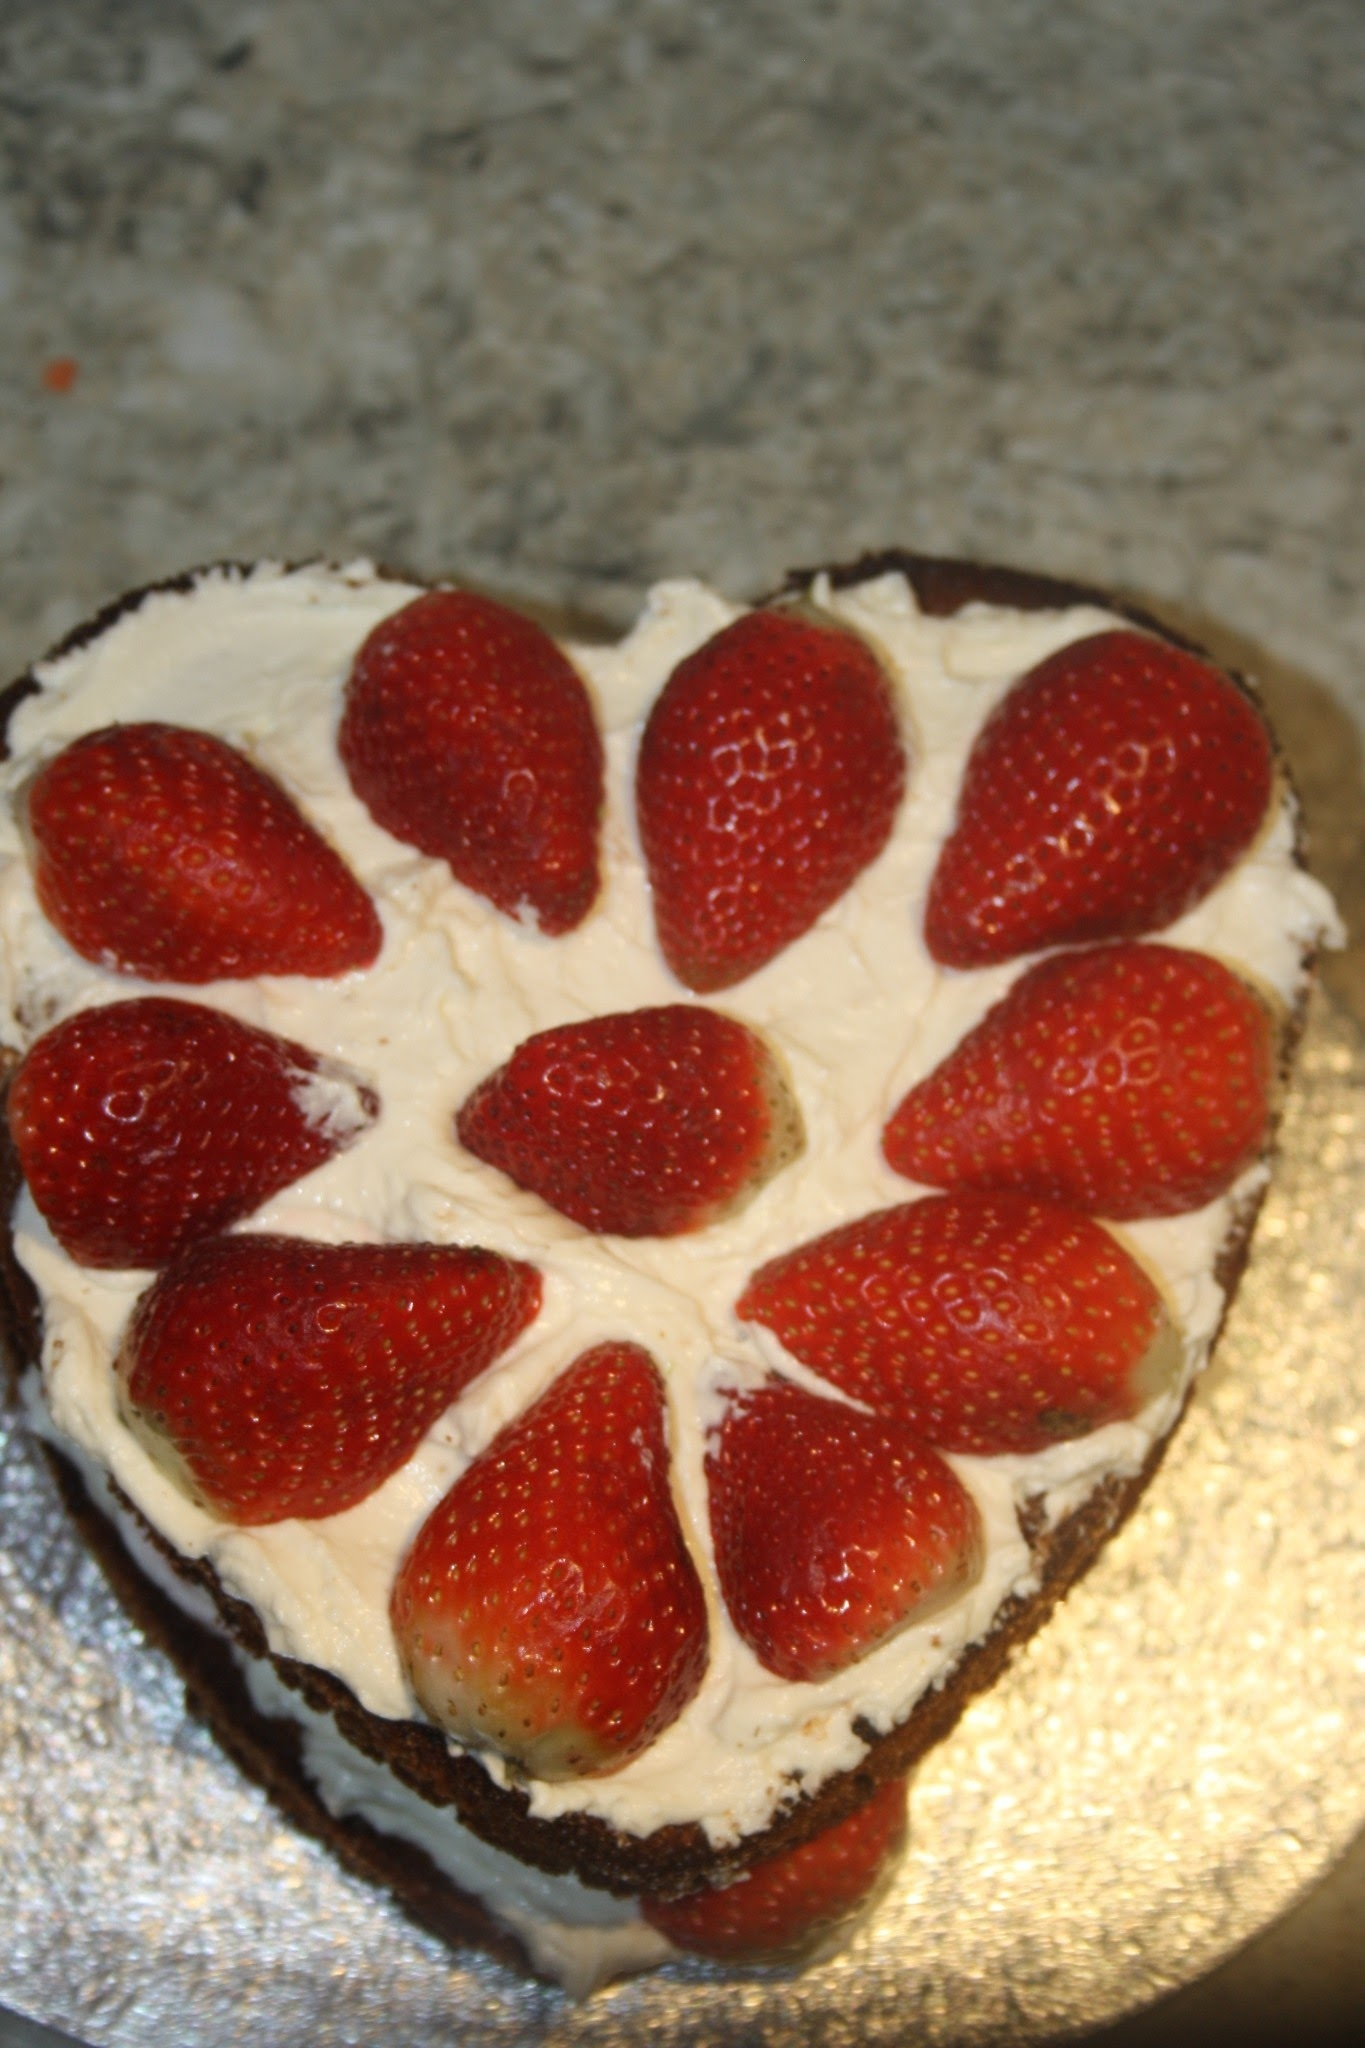 Slimming World Low Fat Valentine's Strawberry Heart Cake